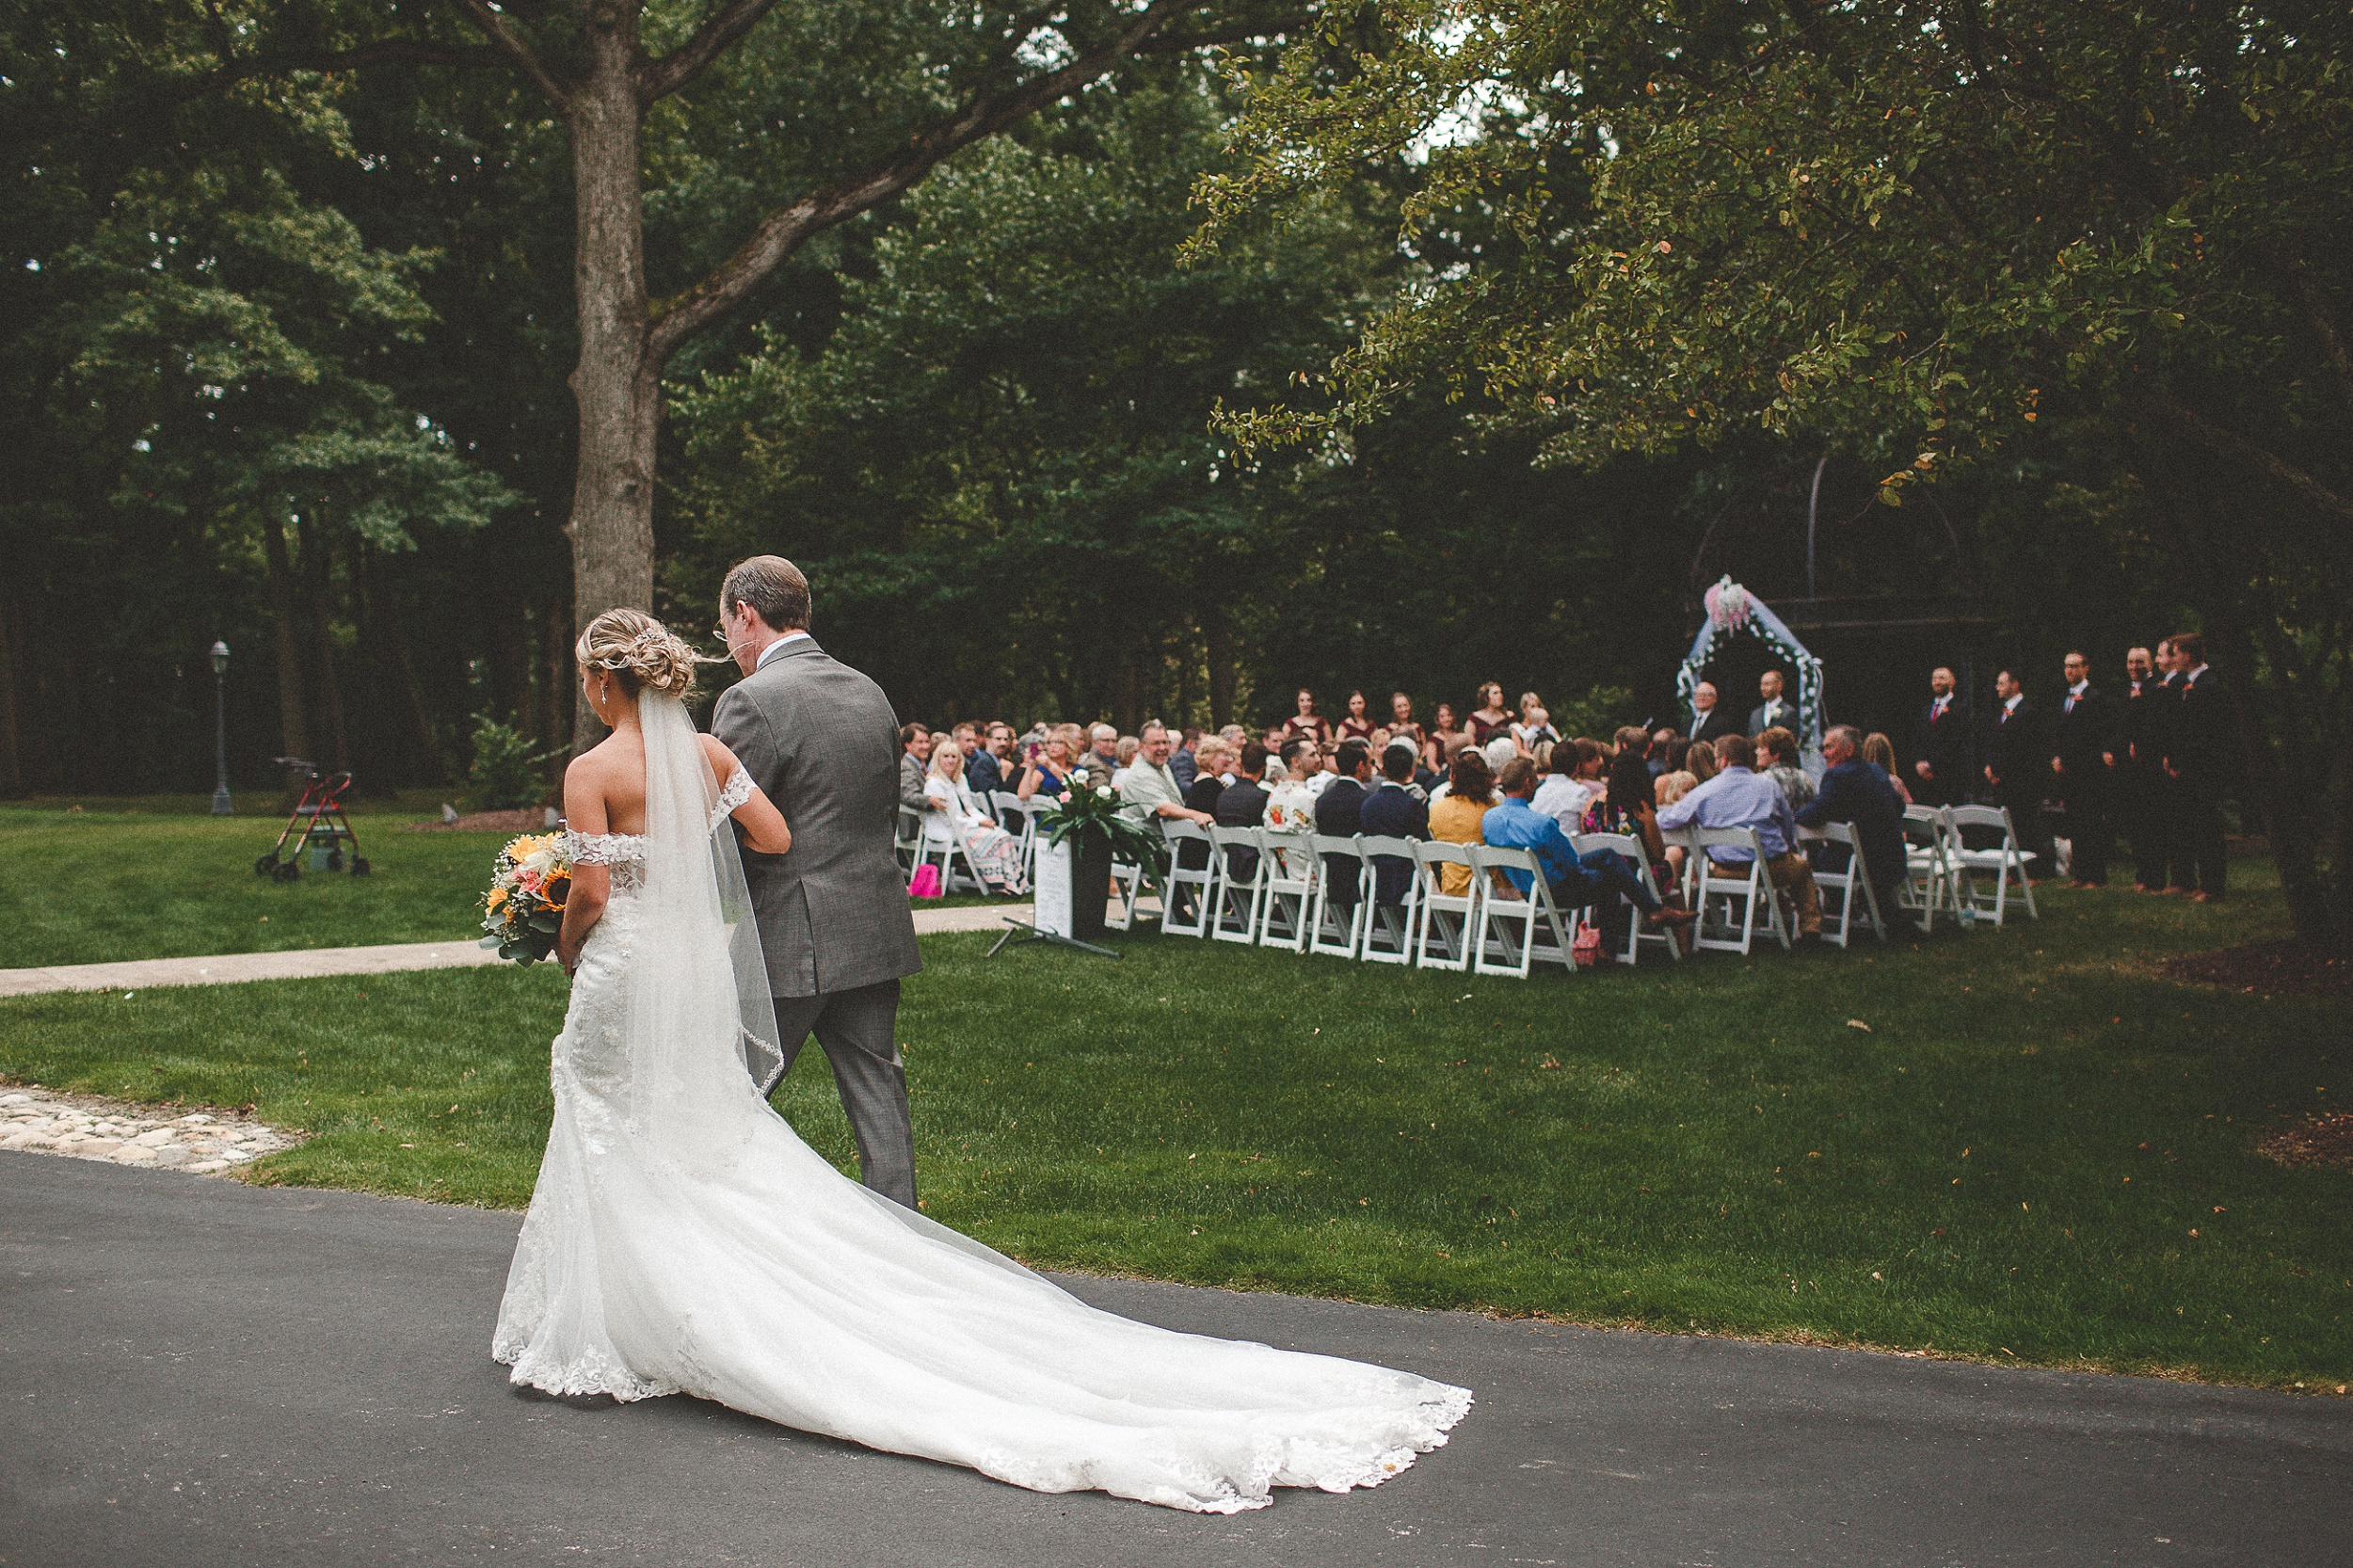 monte-bello-estates-lemont-il-wedding-photography_094.jpg